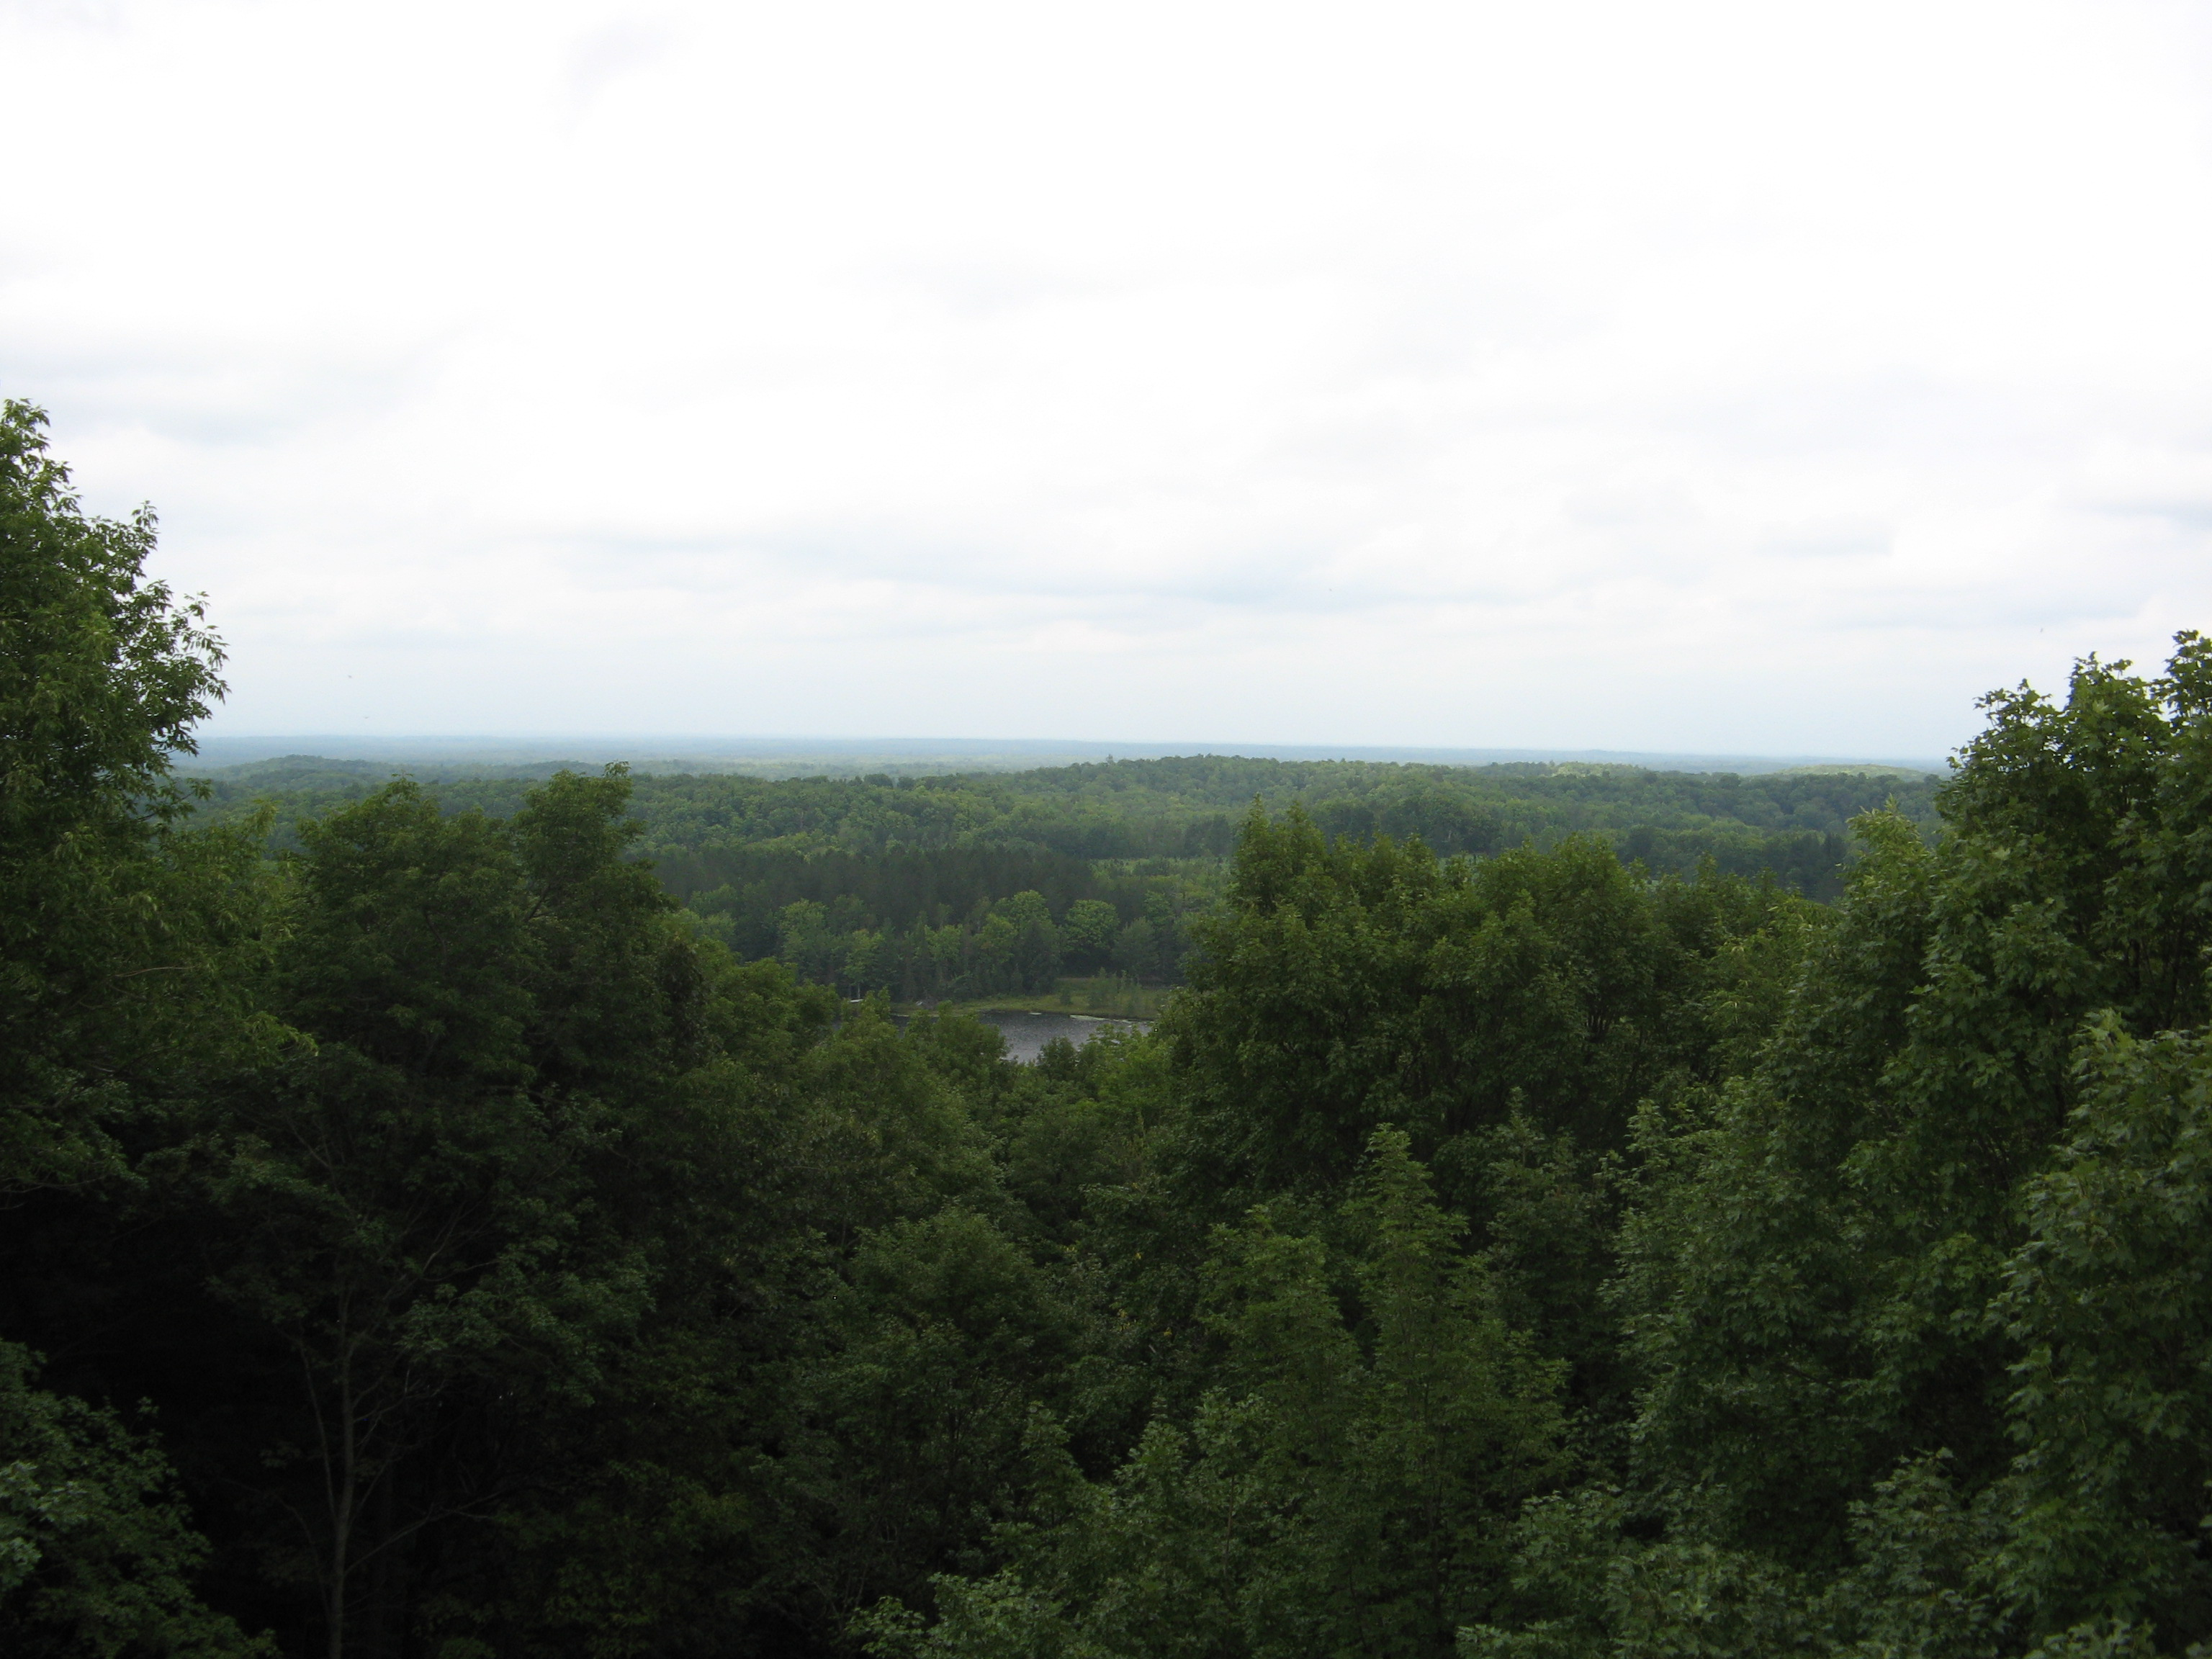 View from the observation tower